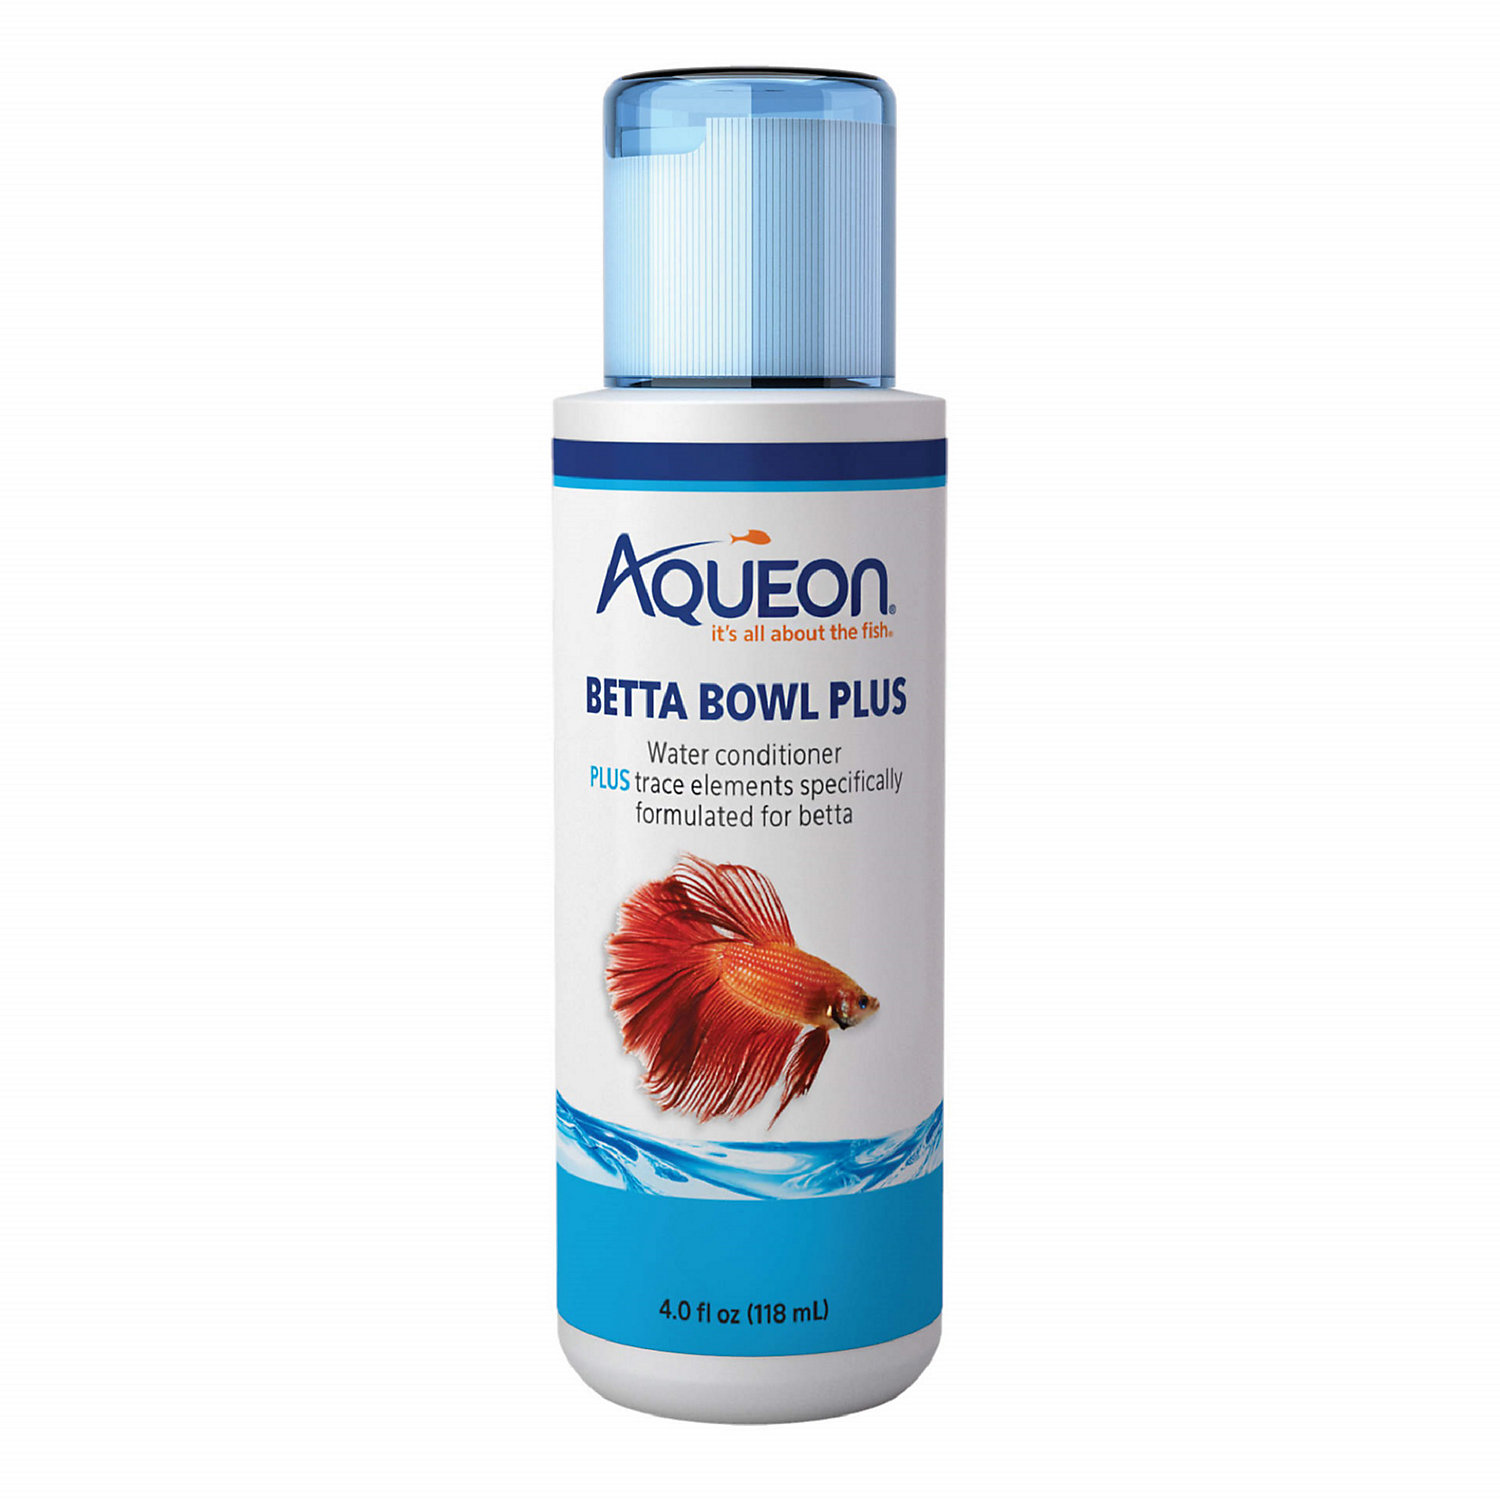 Aqueon Betta Bowl Plus Water Conditioner Dechlorinator